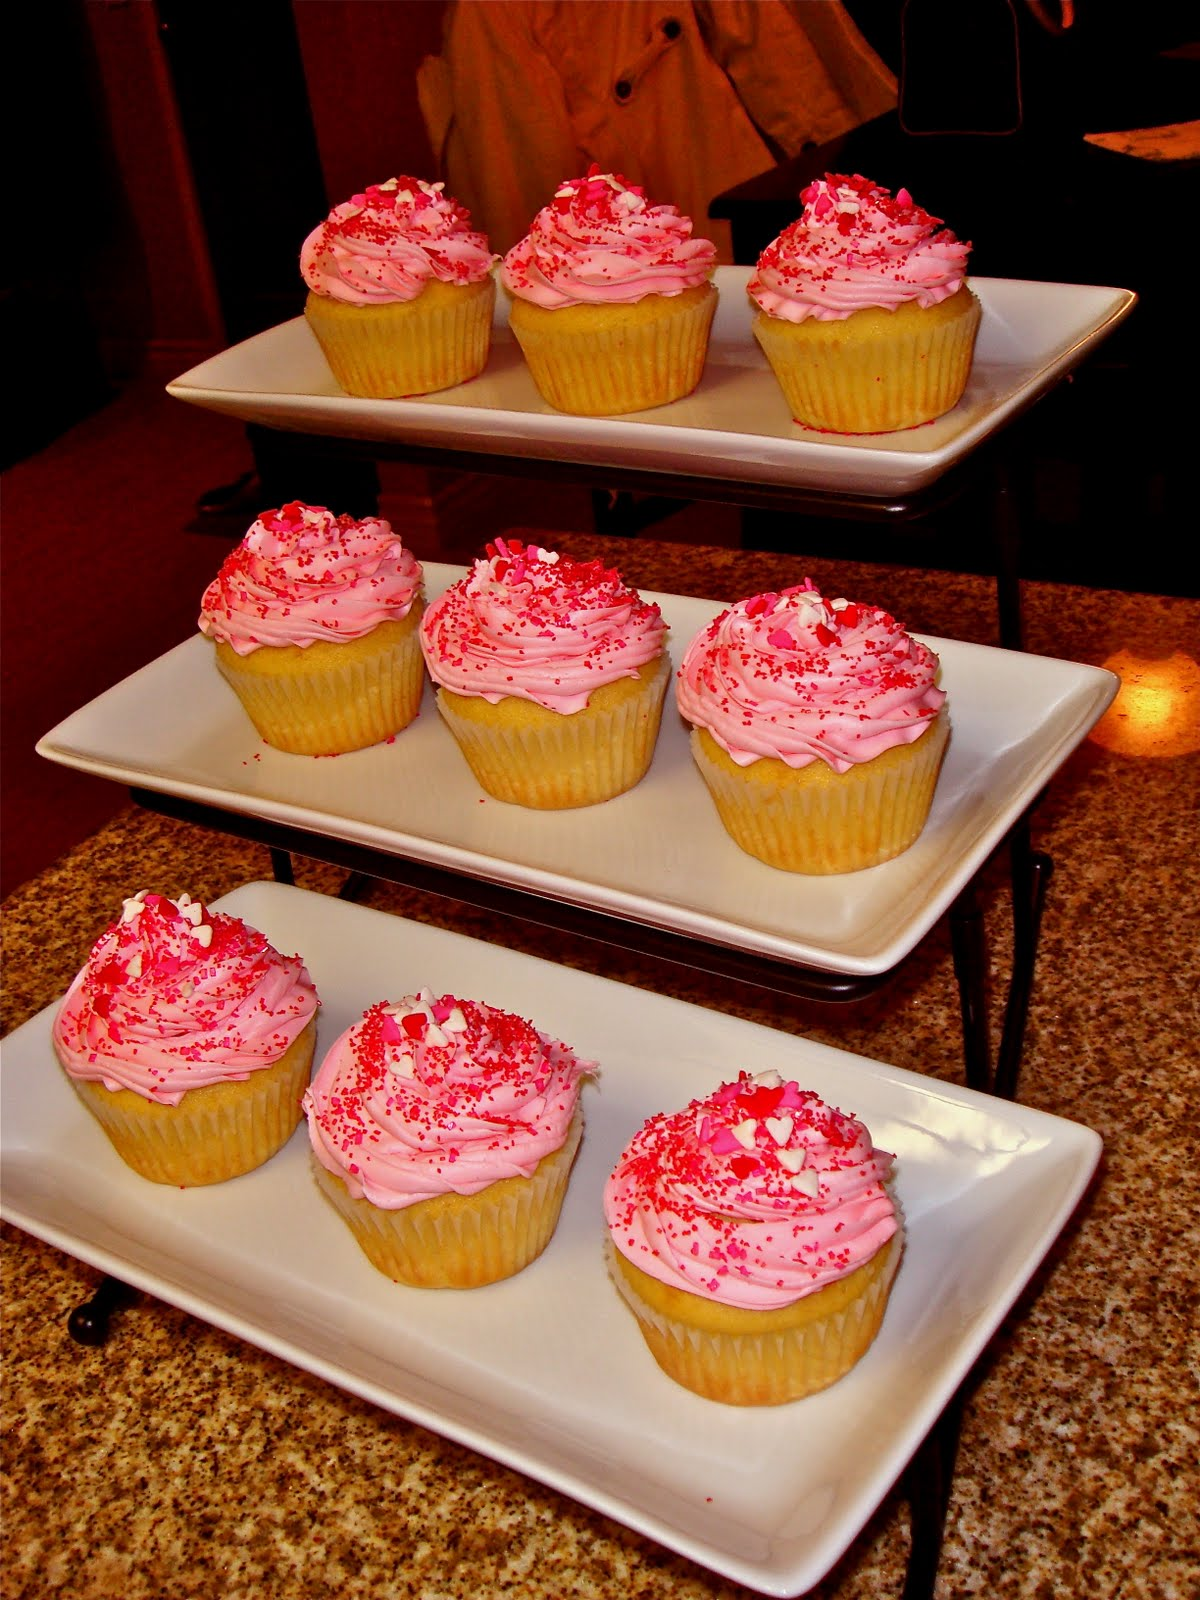 Most Popular Cupcakes